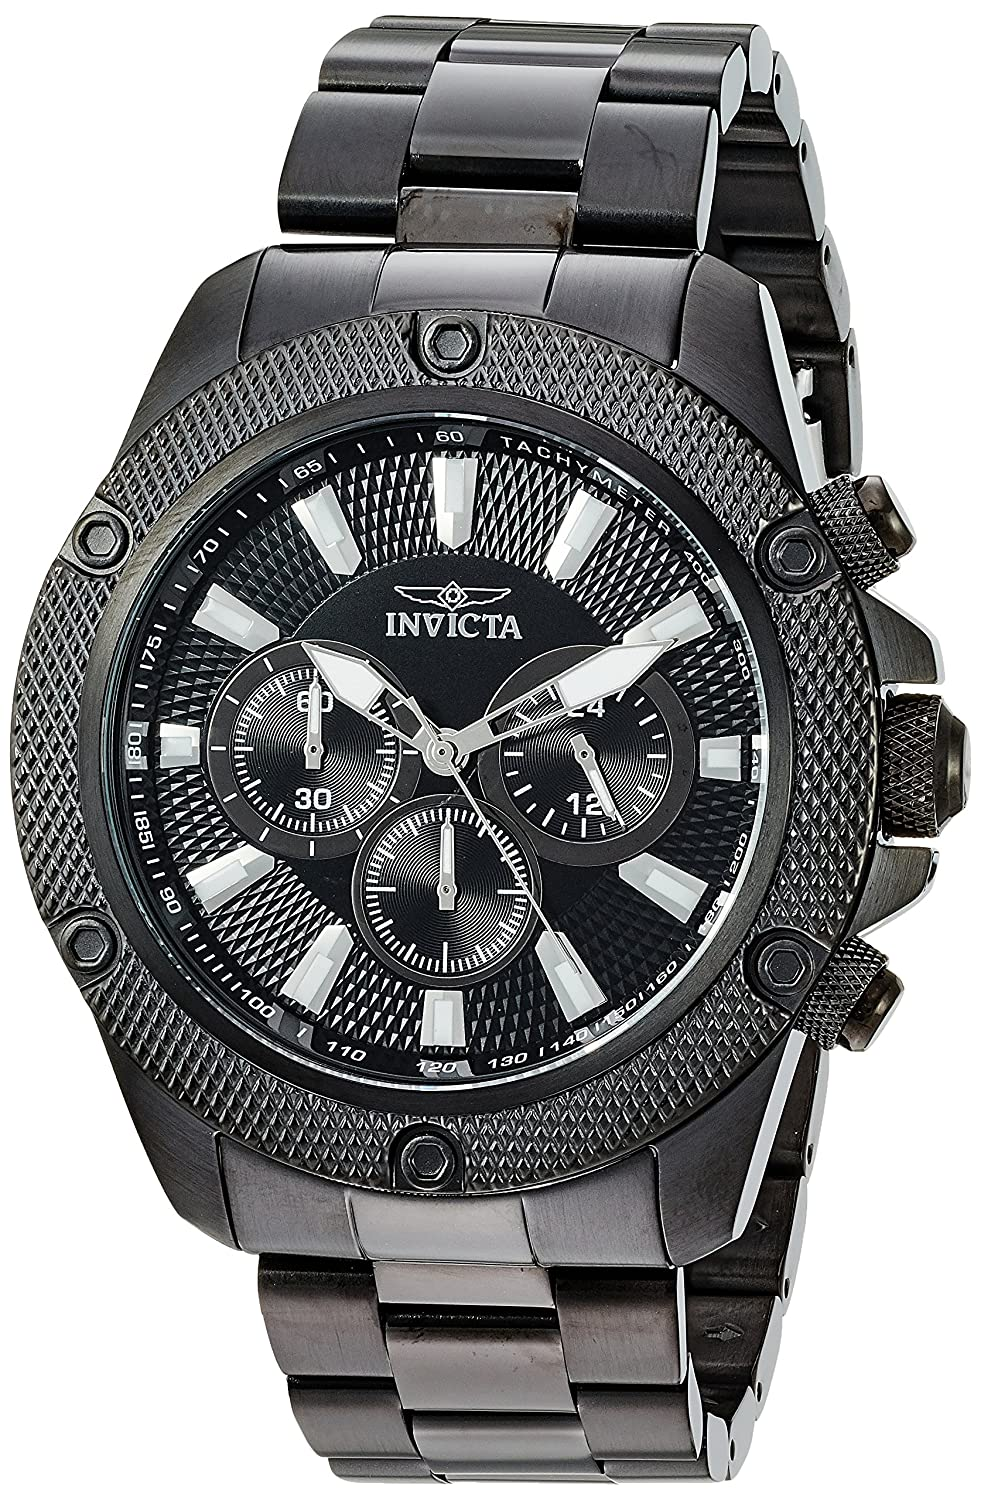 Invicta Men s Pro Diver Quartz Watch with Stainless-Steel Strap, Black, 10 Model 22722